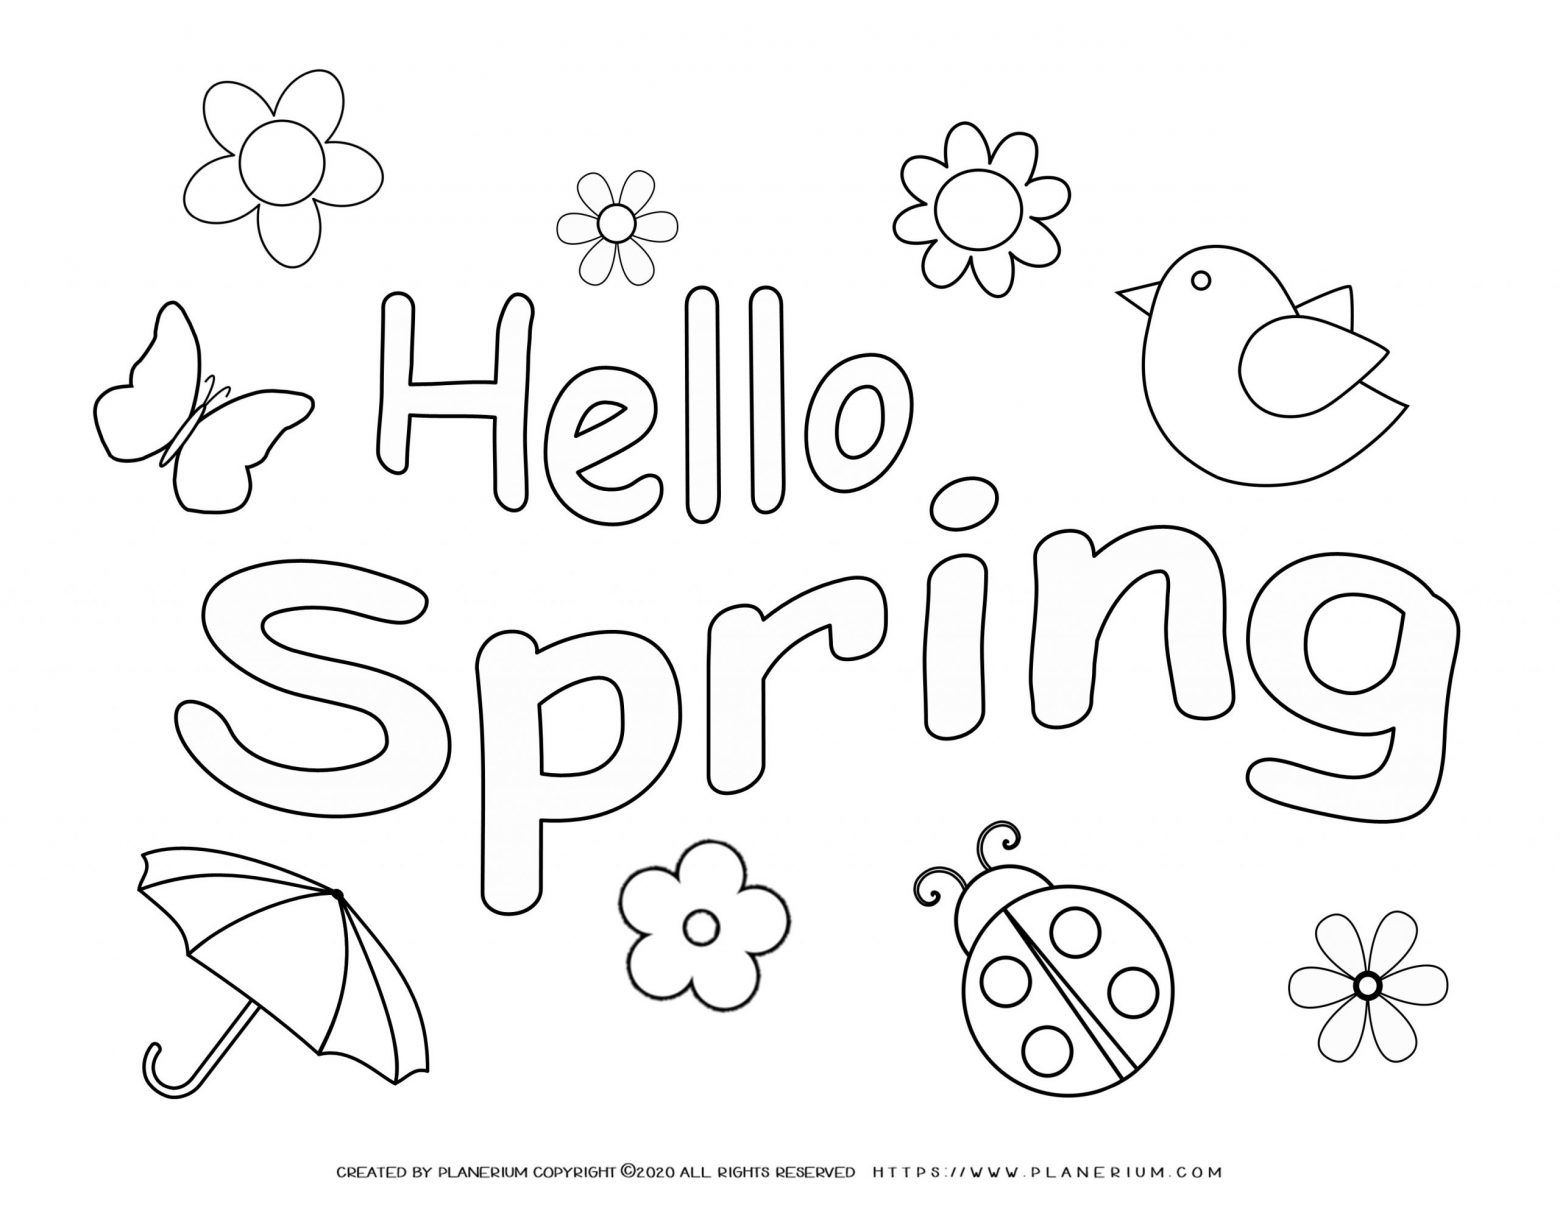 Spring - Coloring pages - Hello Spring | Planerium